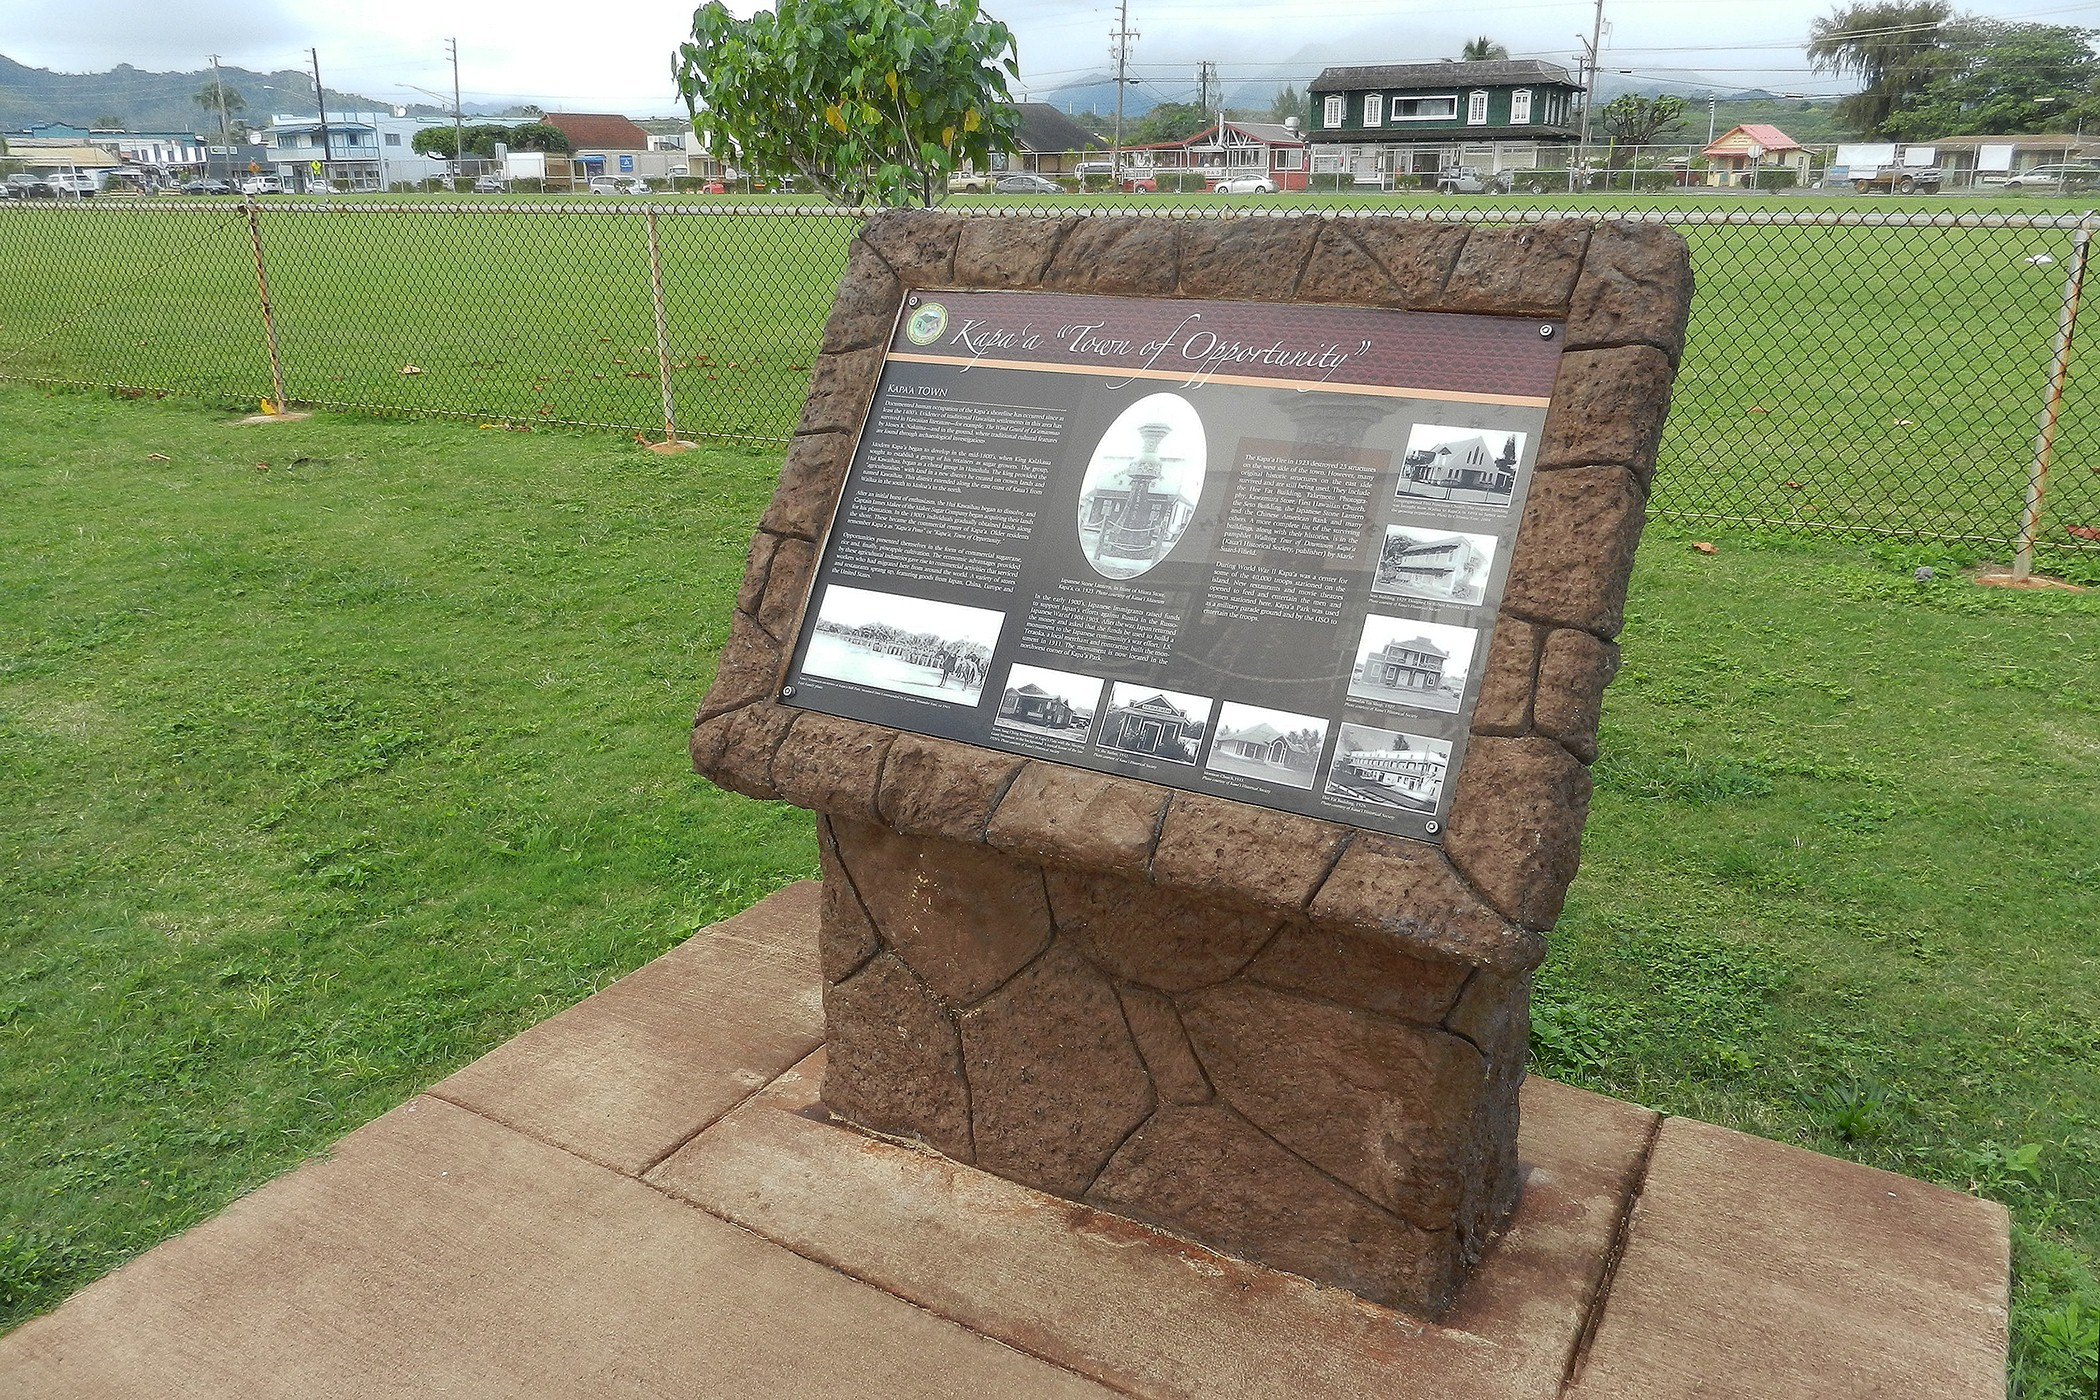 The County of Kaua'i received a Preservation Honor Award from the Historic Hawai'i Foundation for its series of interpretive signs  placed along Ke Ala Hele Makalae. This sign describes Kapa'a Town's pre-contact and modern-day history.